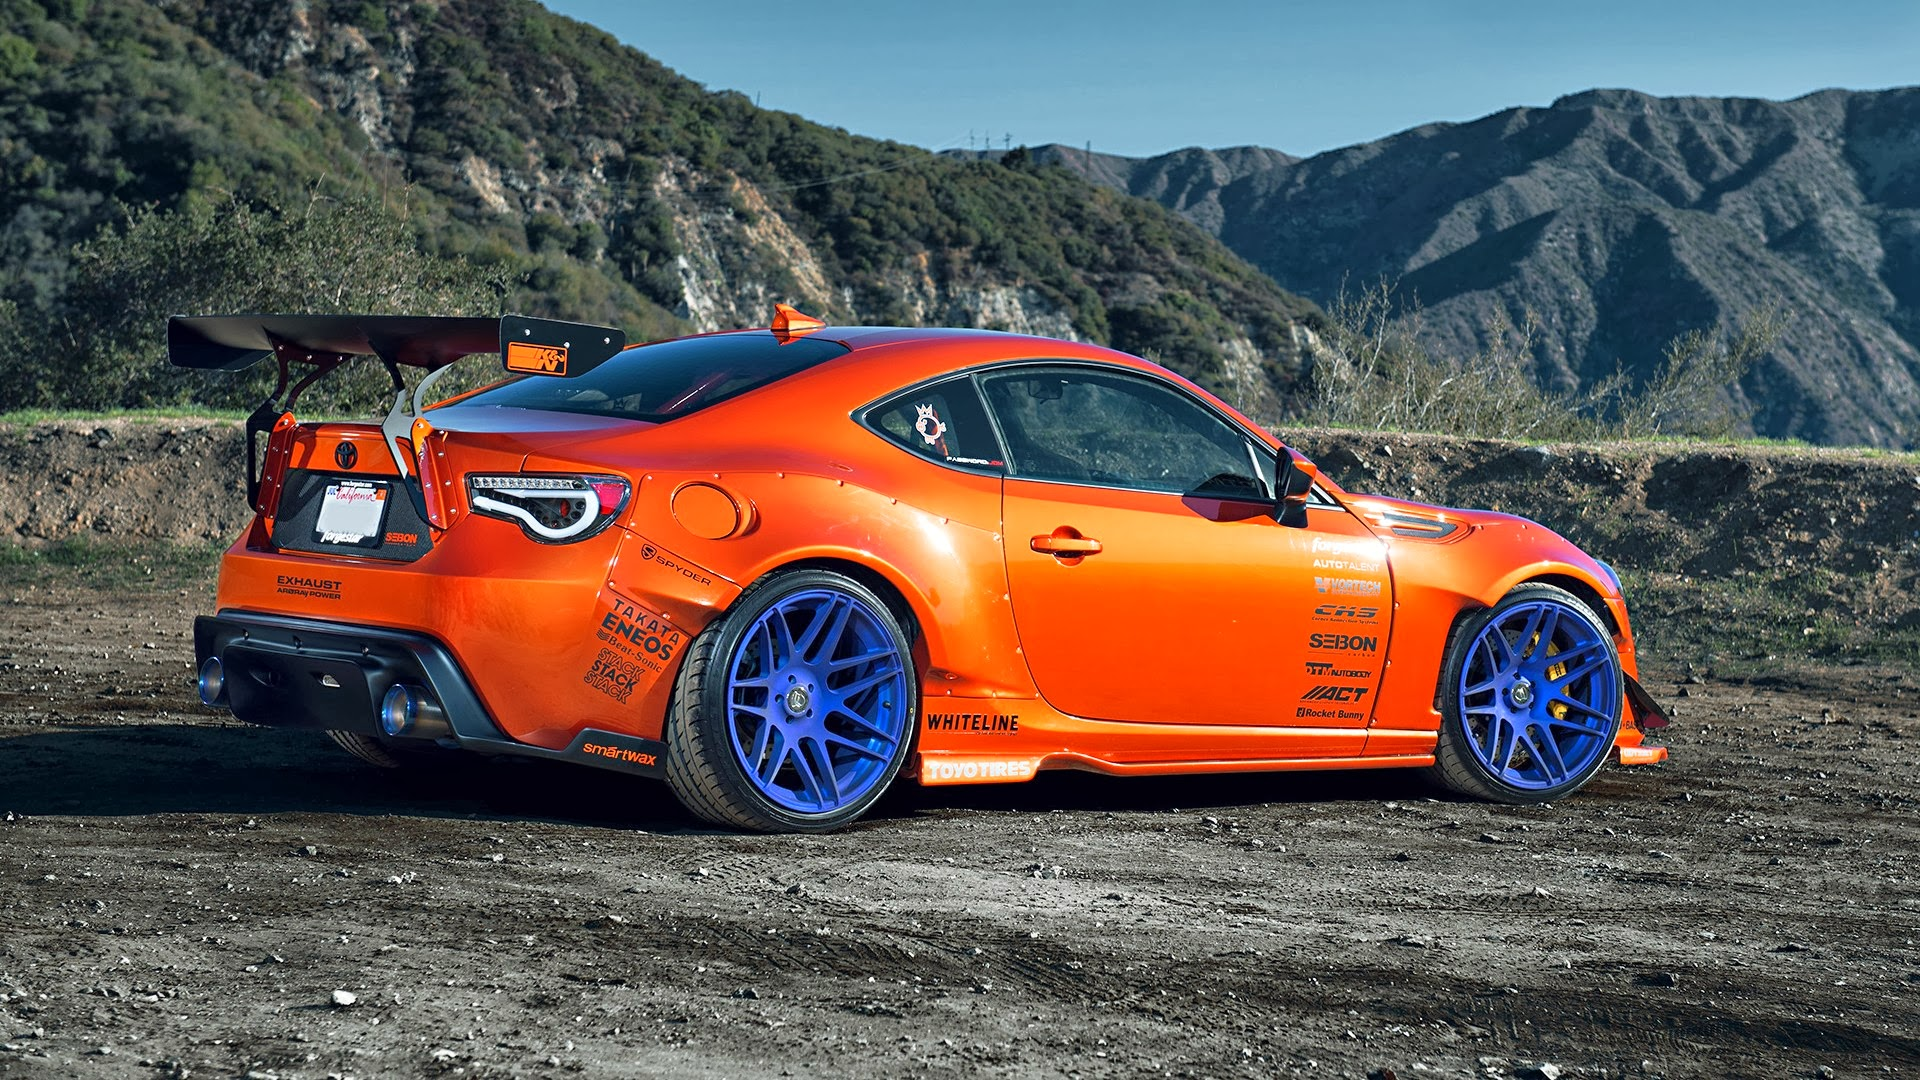 Scion Frs Turbo >> Tuned Car Wallpapers - WallpaperSafari